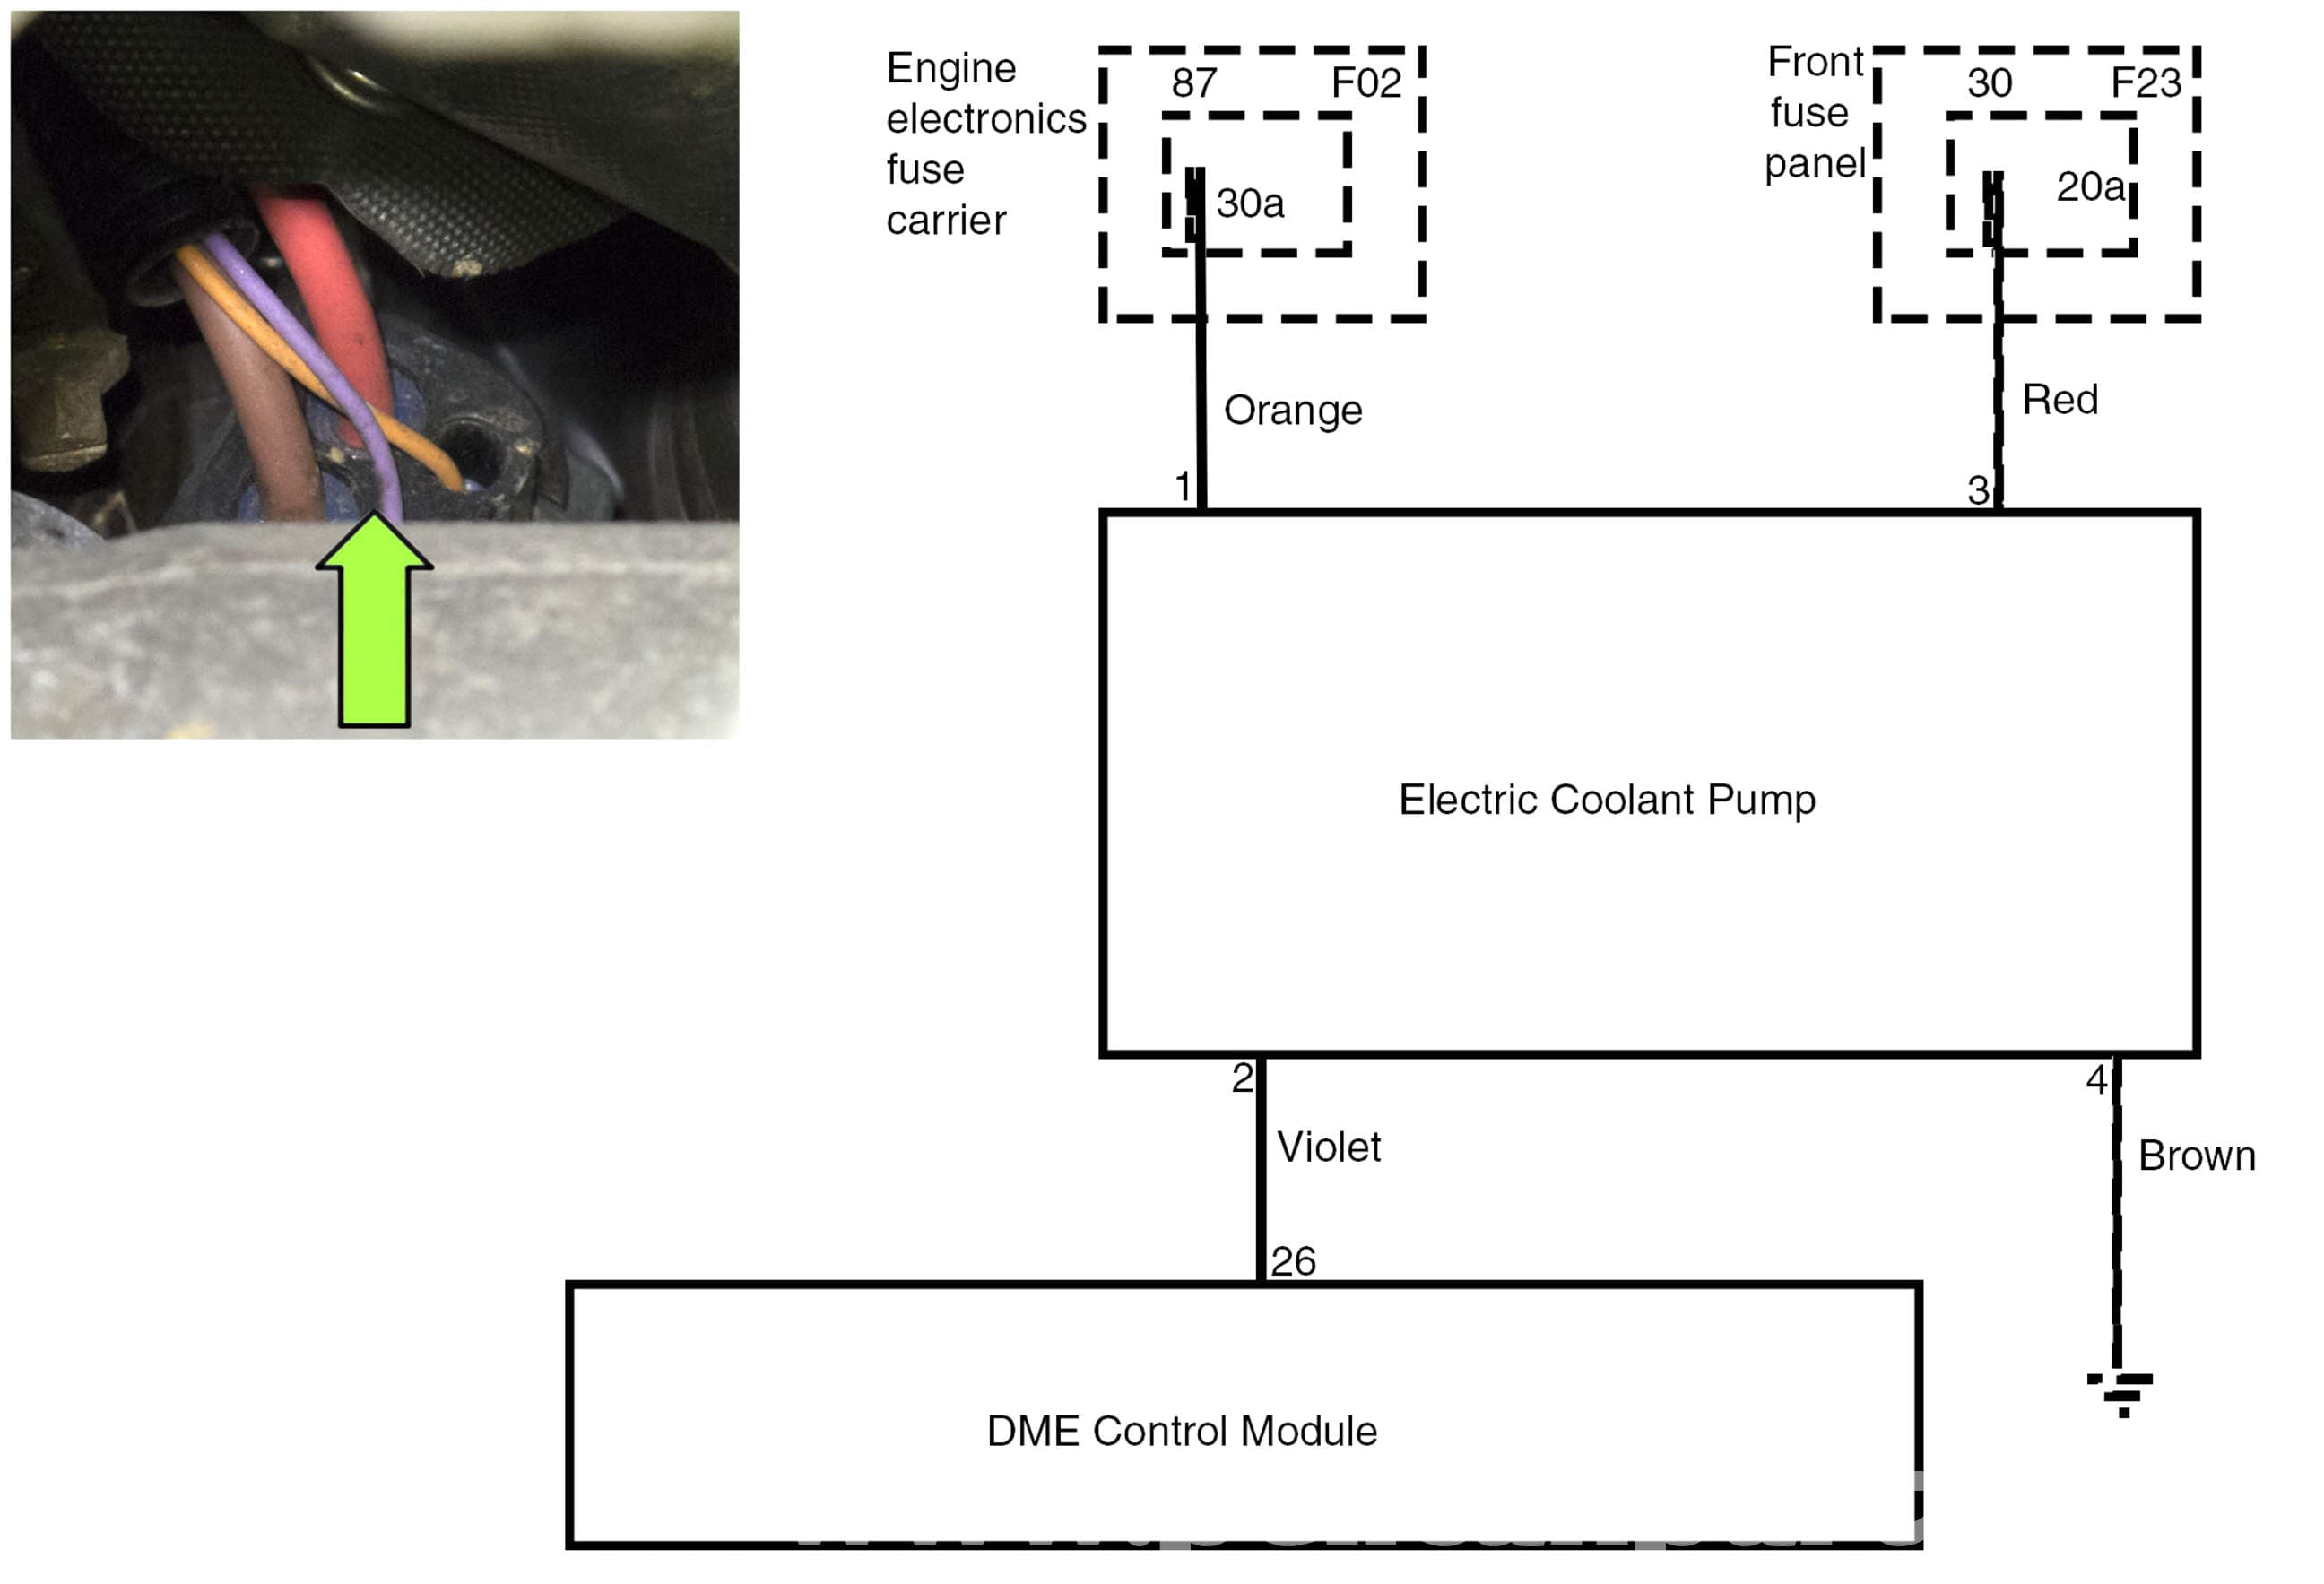 2005 Bmw Z4 E85 Main Fuse Box Diagram moreover Watch in addition 2004 Bmw E46 Fuel Pump Relay Location as well 102331 Starter Relay Location Mystery moreover Swap Cluster Civic 2001 Dx To 2004 Lx Honda Civic Forum Best 2002 Pertaining To 2001 Honda Accord Wiring Diagram. on 2000 bmw 528i fuse box diagram